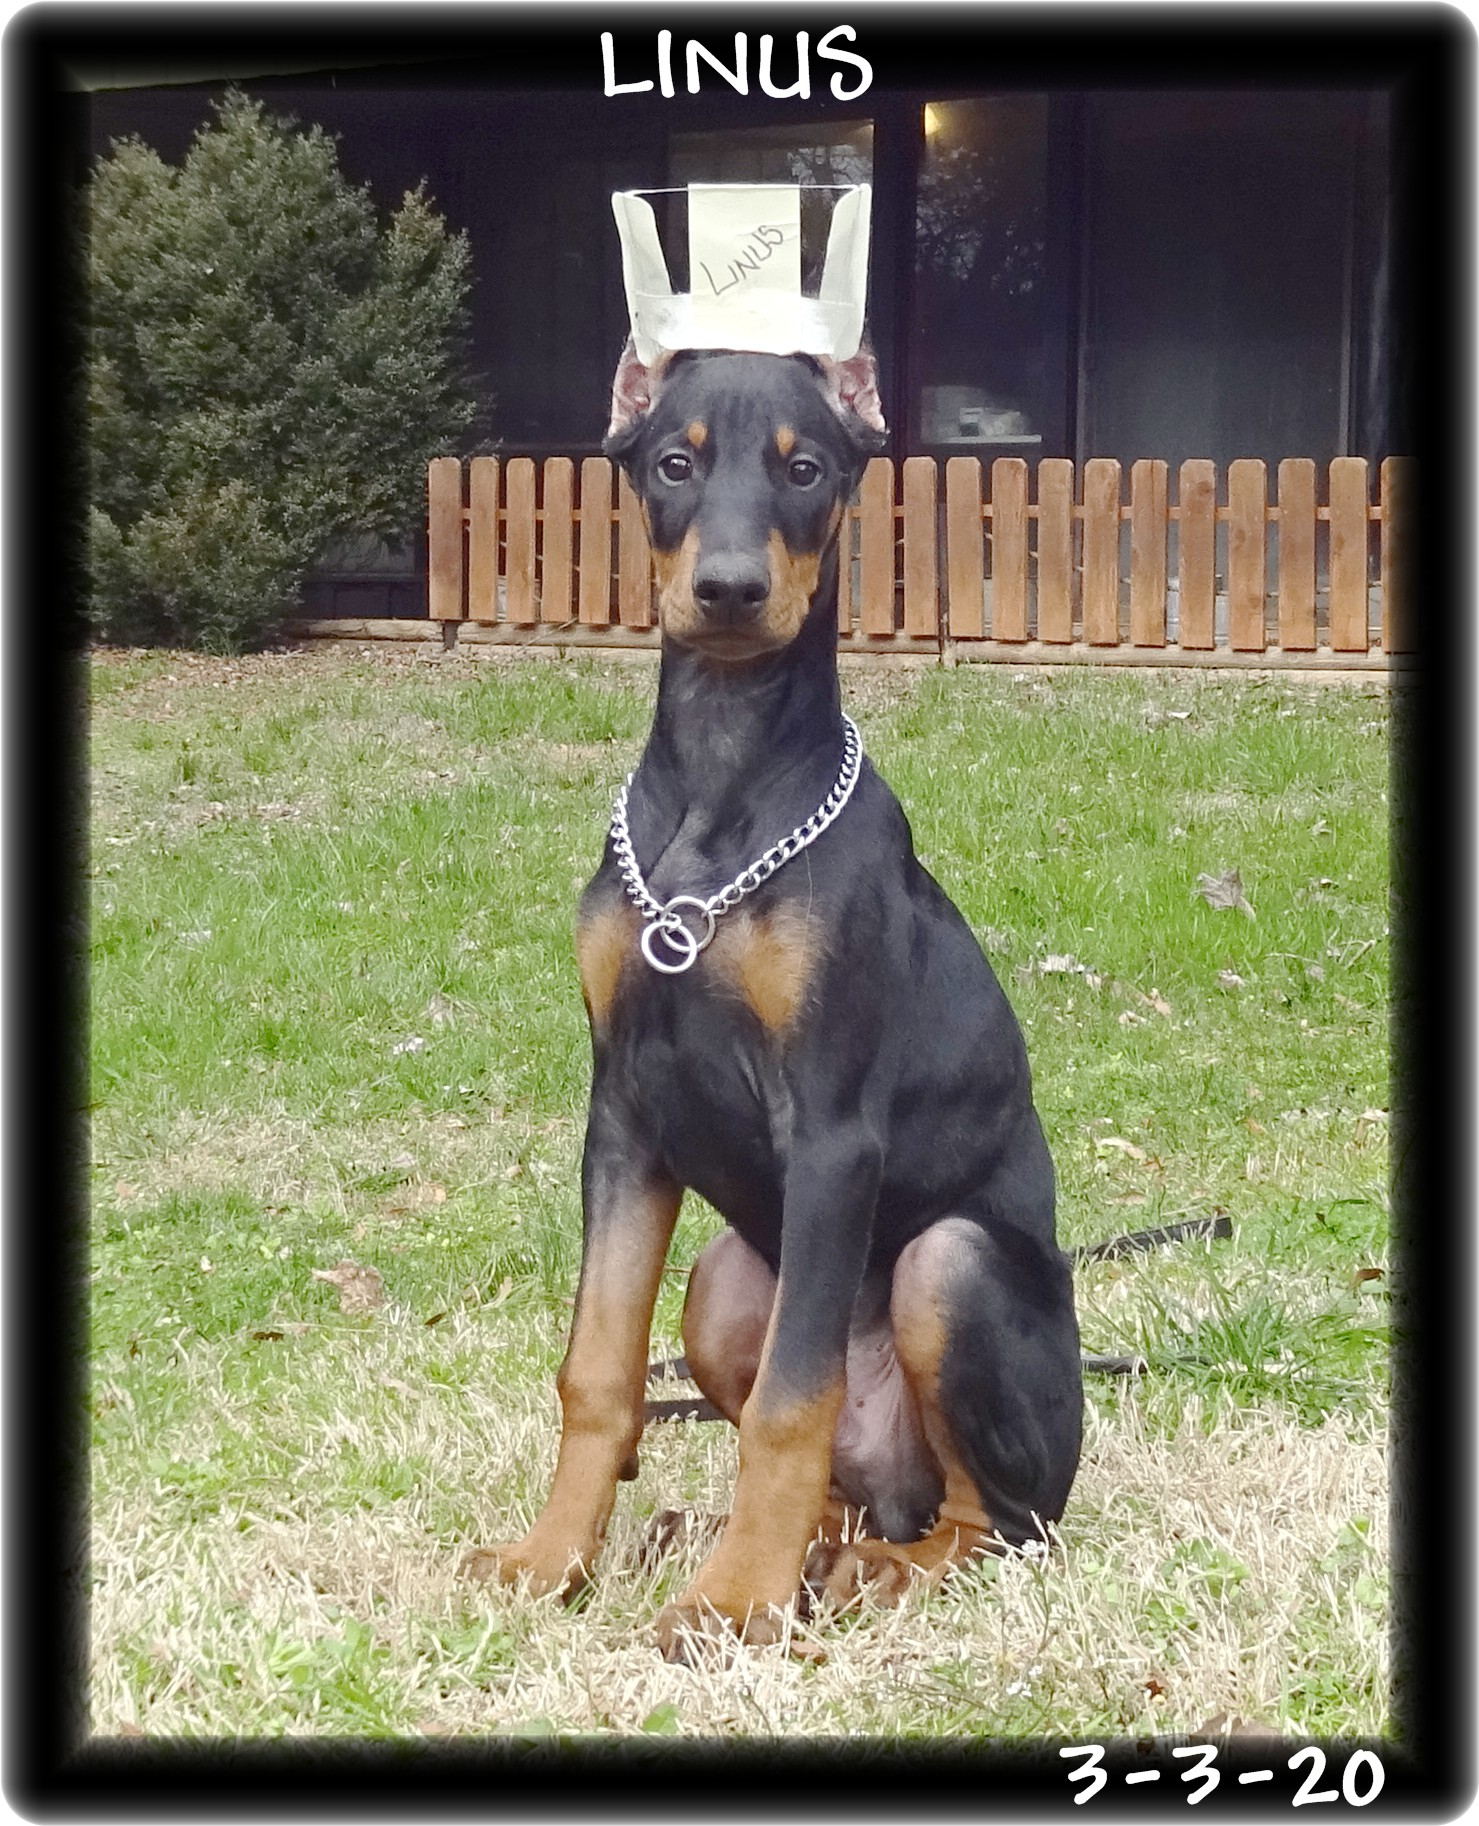 "Linus .. Buffy pup in Super Pup 2 PLUS program. This sharp mind with 'killer' style is quite personable & social. Picked up on Fathers Day & a nine year old Hoytt girl will be waiting ready to teach ""YES DEAR"".  Pennsylvania - established client."